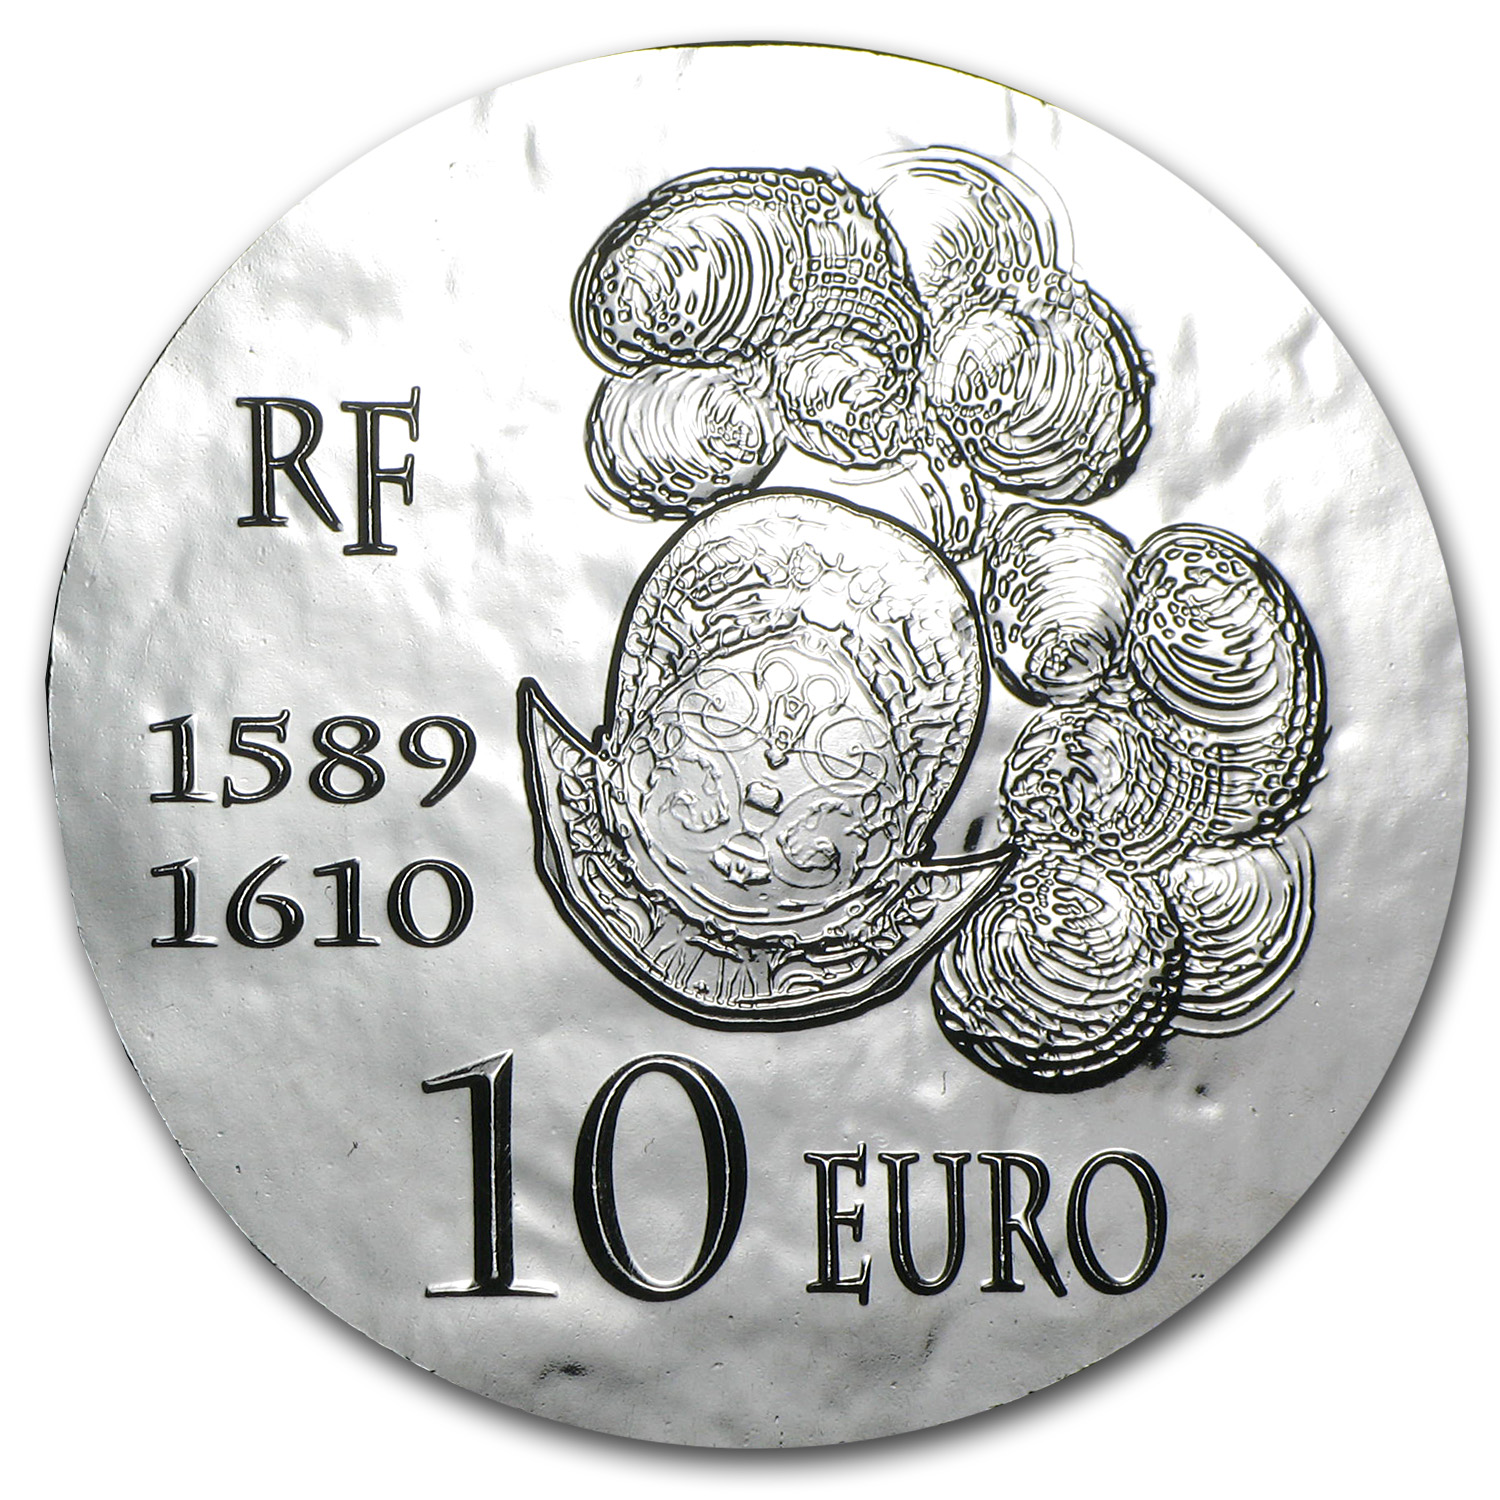 2013 France Silver €10 Legendary Collection Proof (Henri IV)